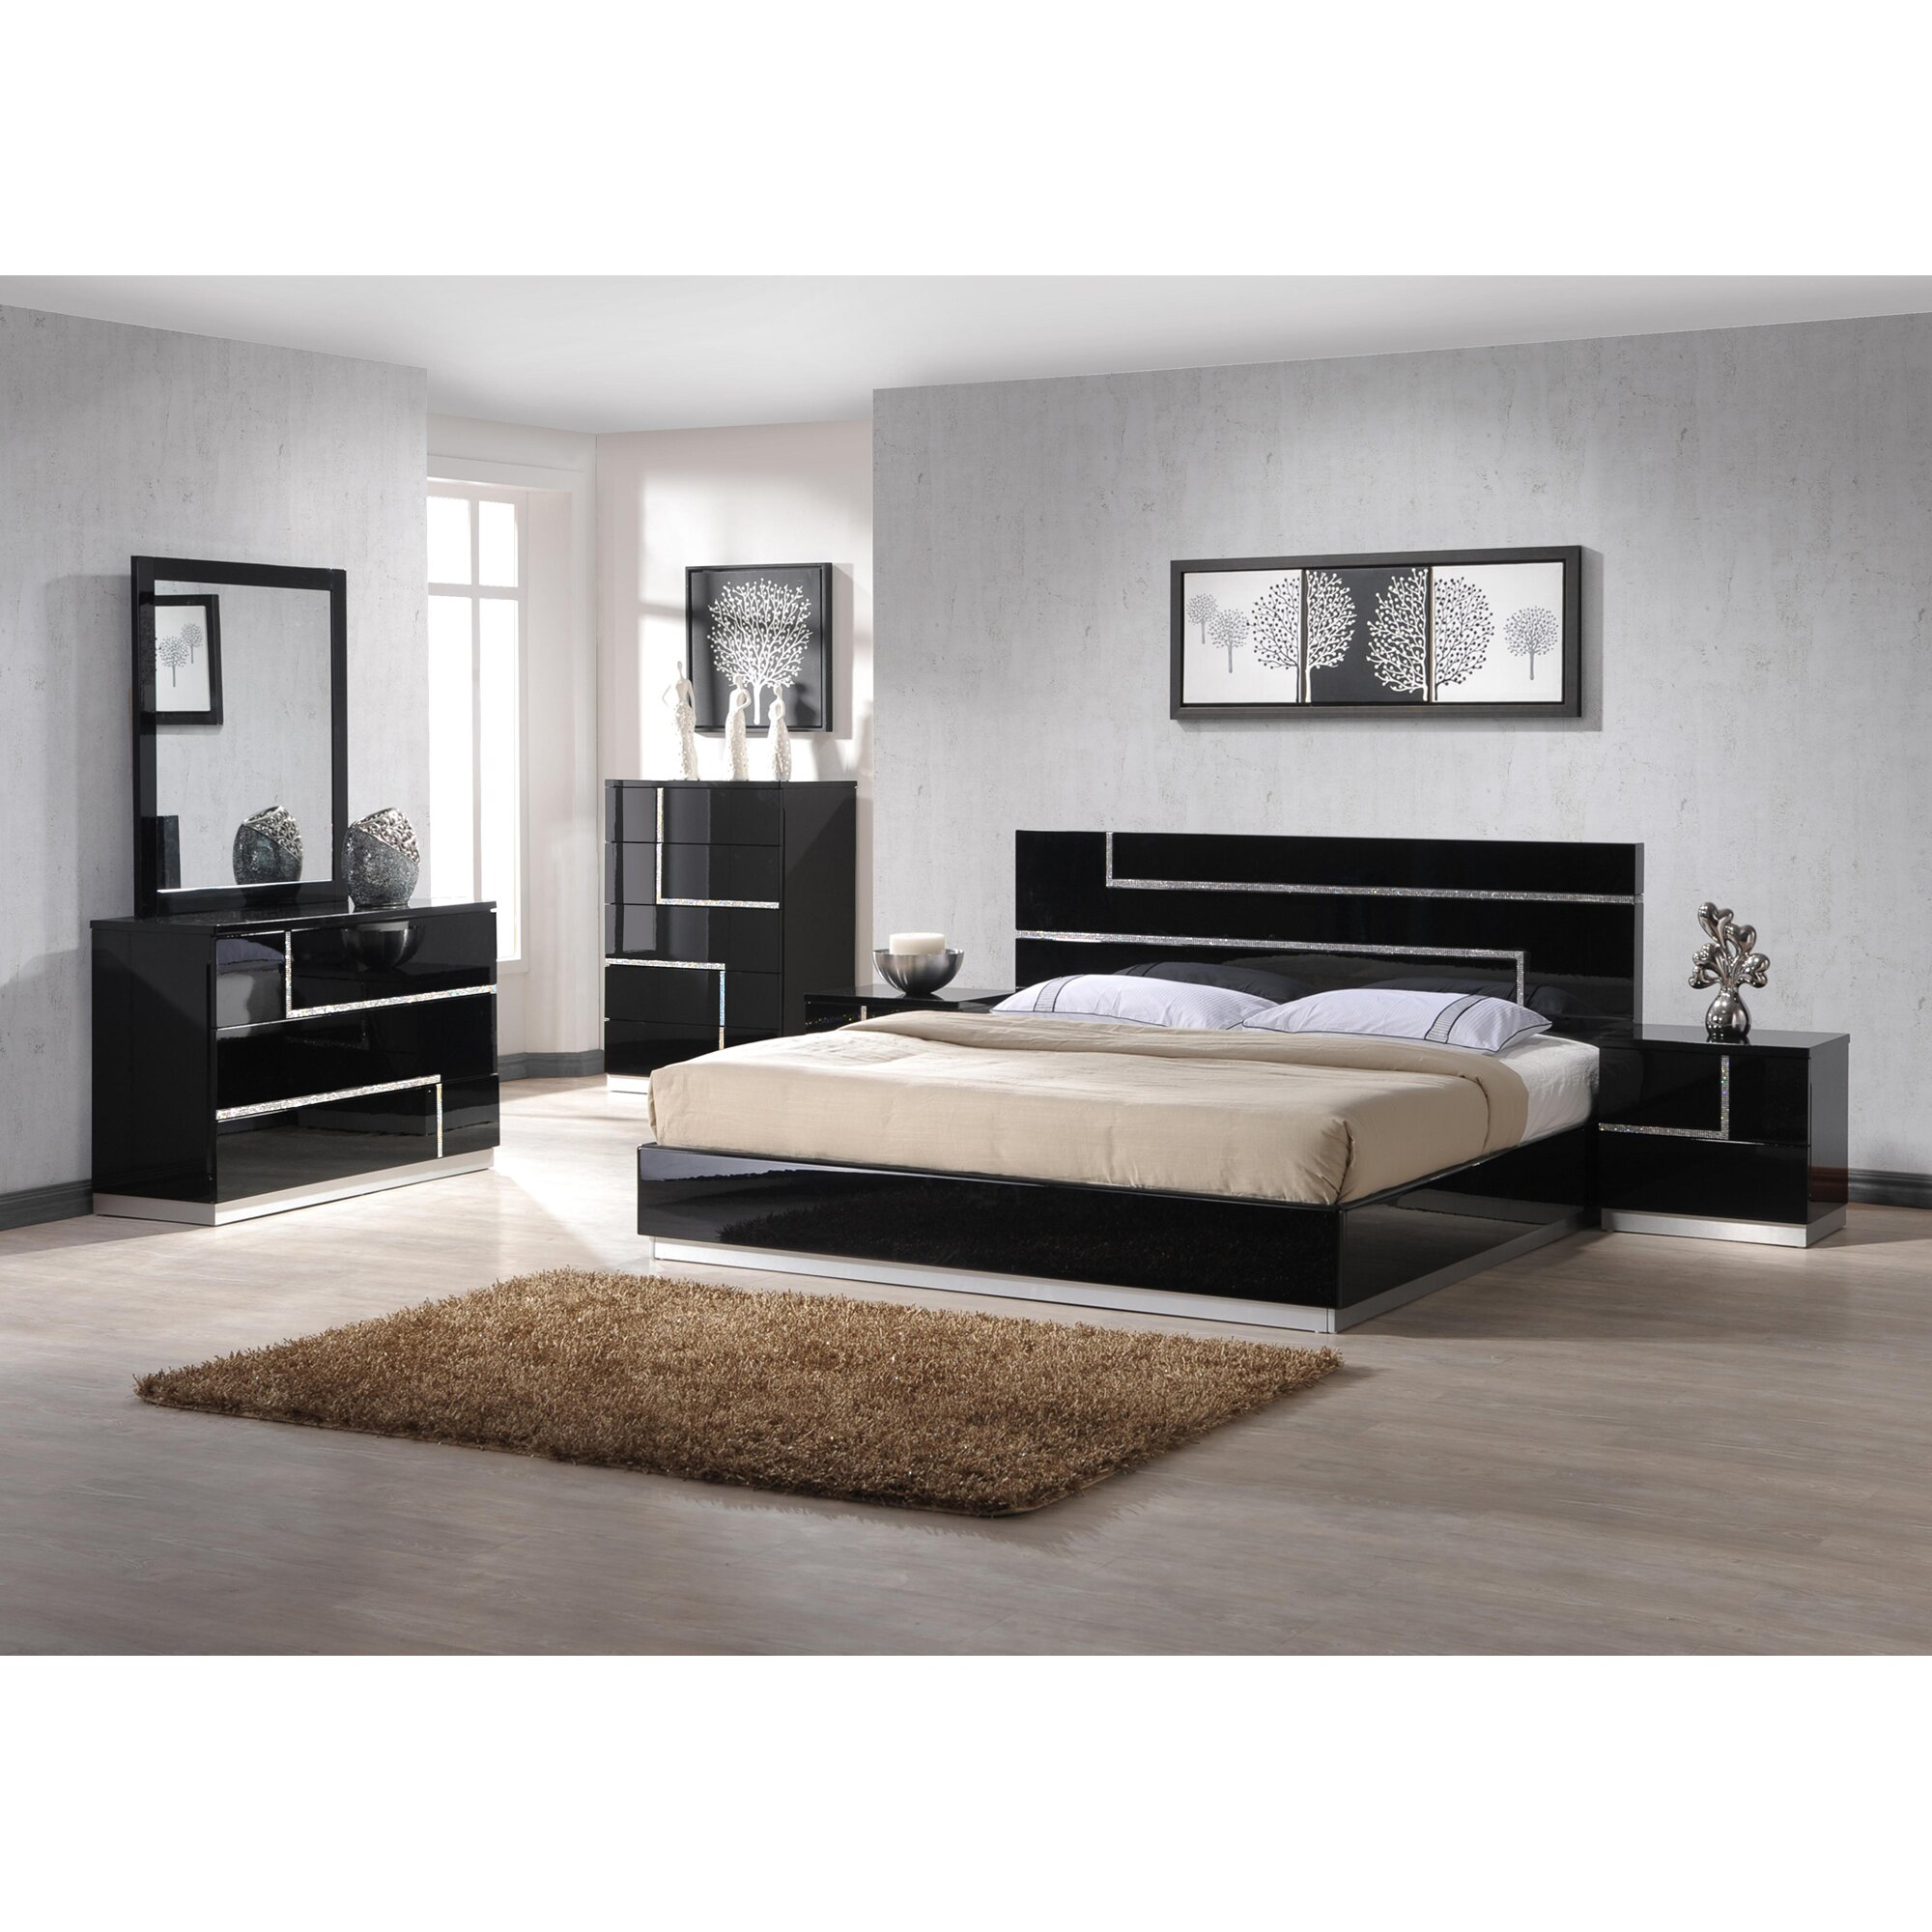 Black and red bedroom furniture - Charming Pictures Of Red Bedrooms 9 Black Ed Furniture Your Home